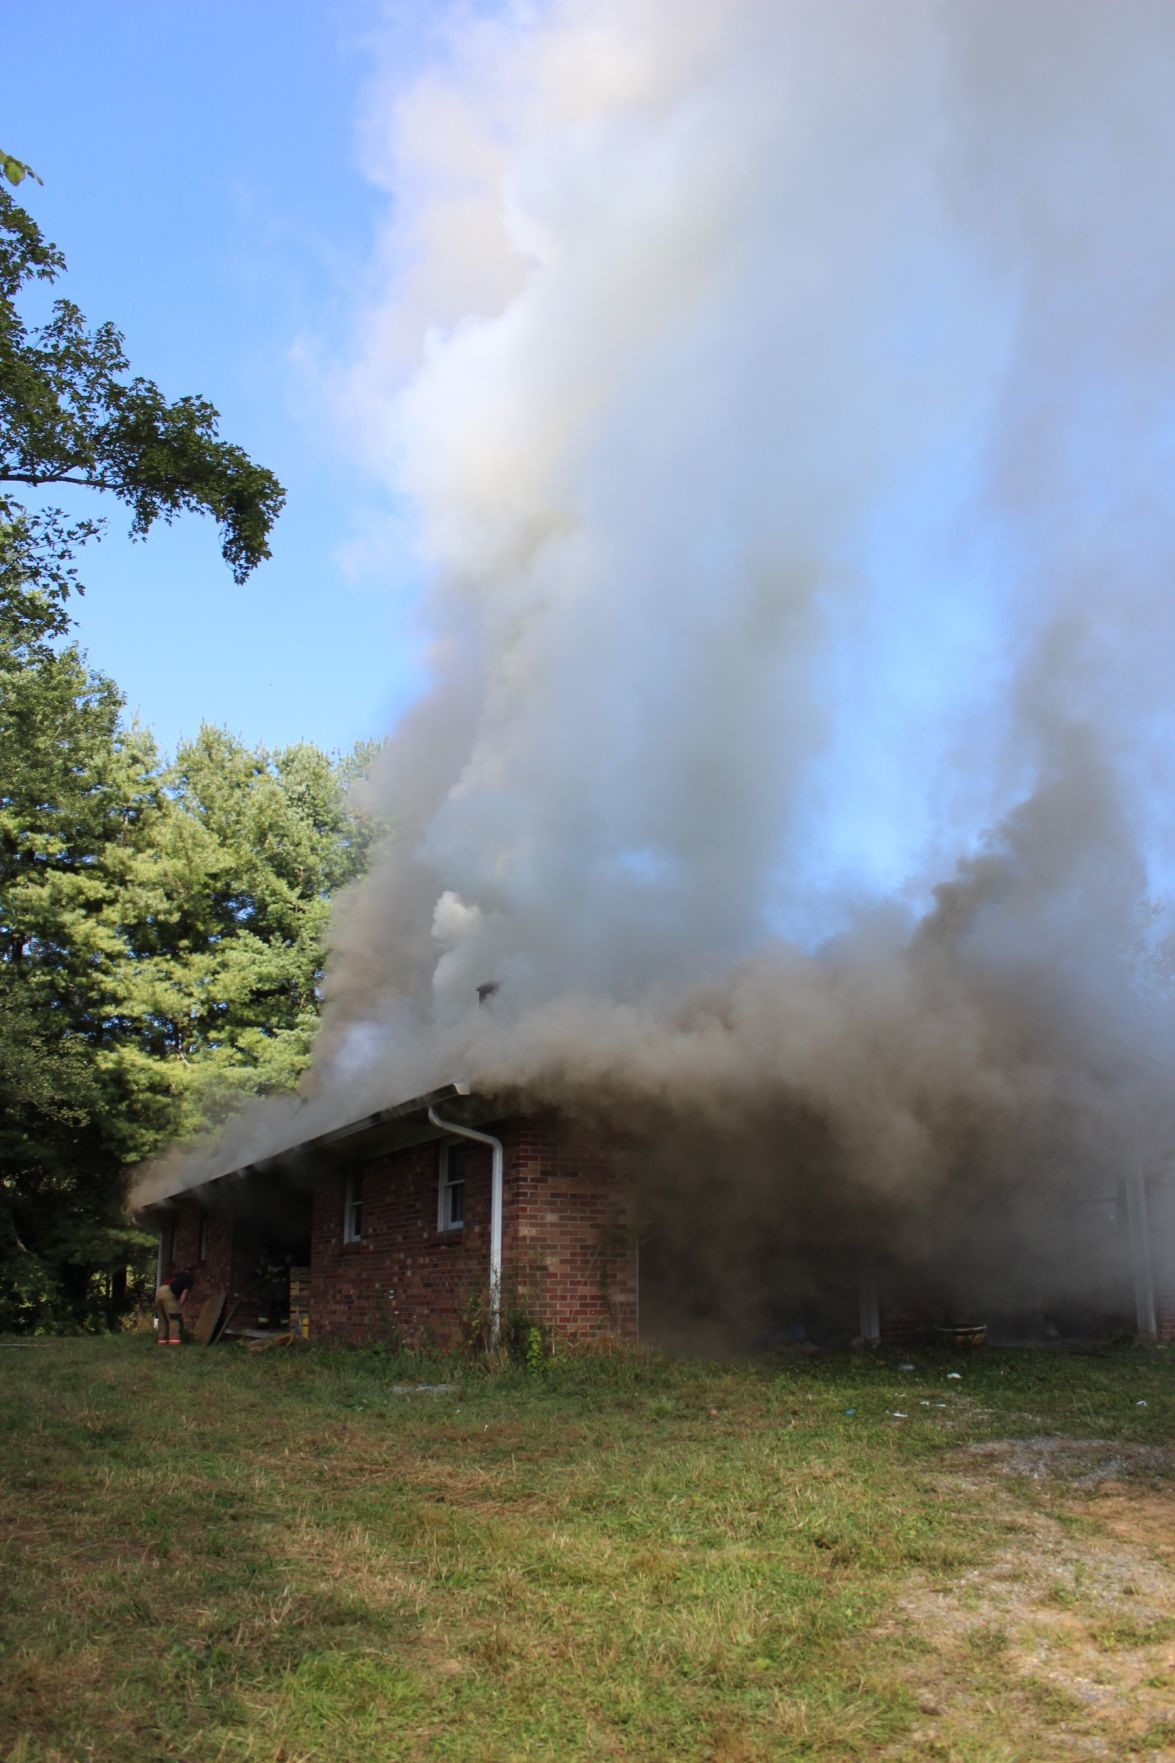 At a controlled burn and fire training on Aug. 17, smoke billows out of the house. Smoke carries harmful polycyclic aromatic hydrocarbons (PAHs) that increase the chance of cancer for firefighters.